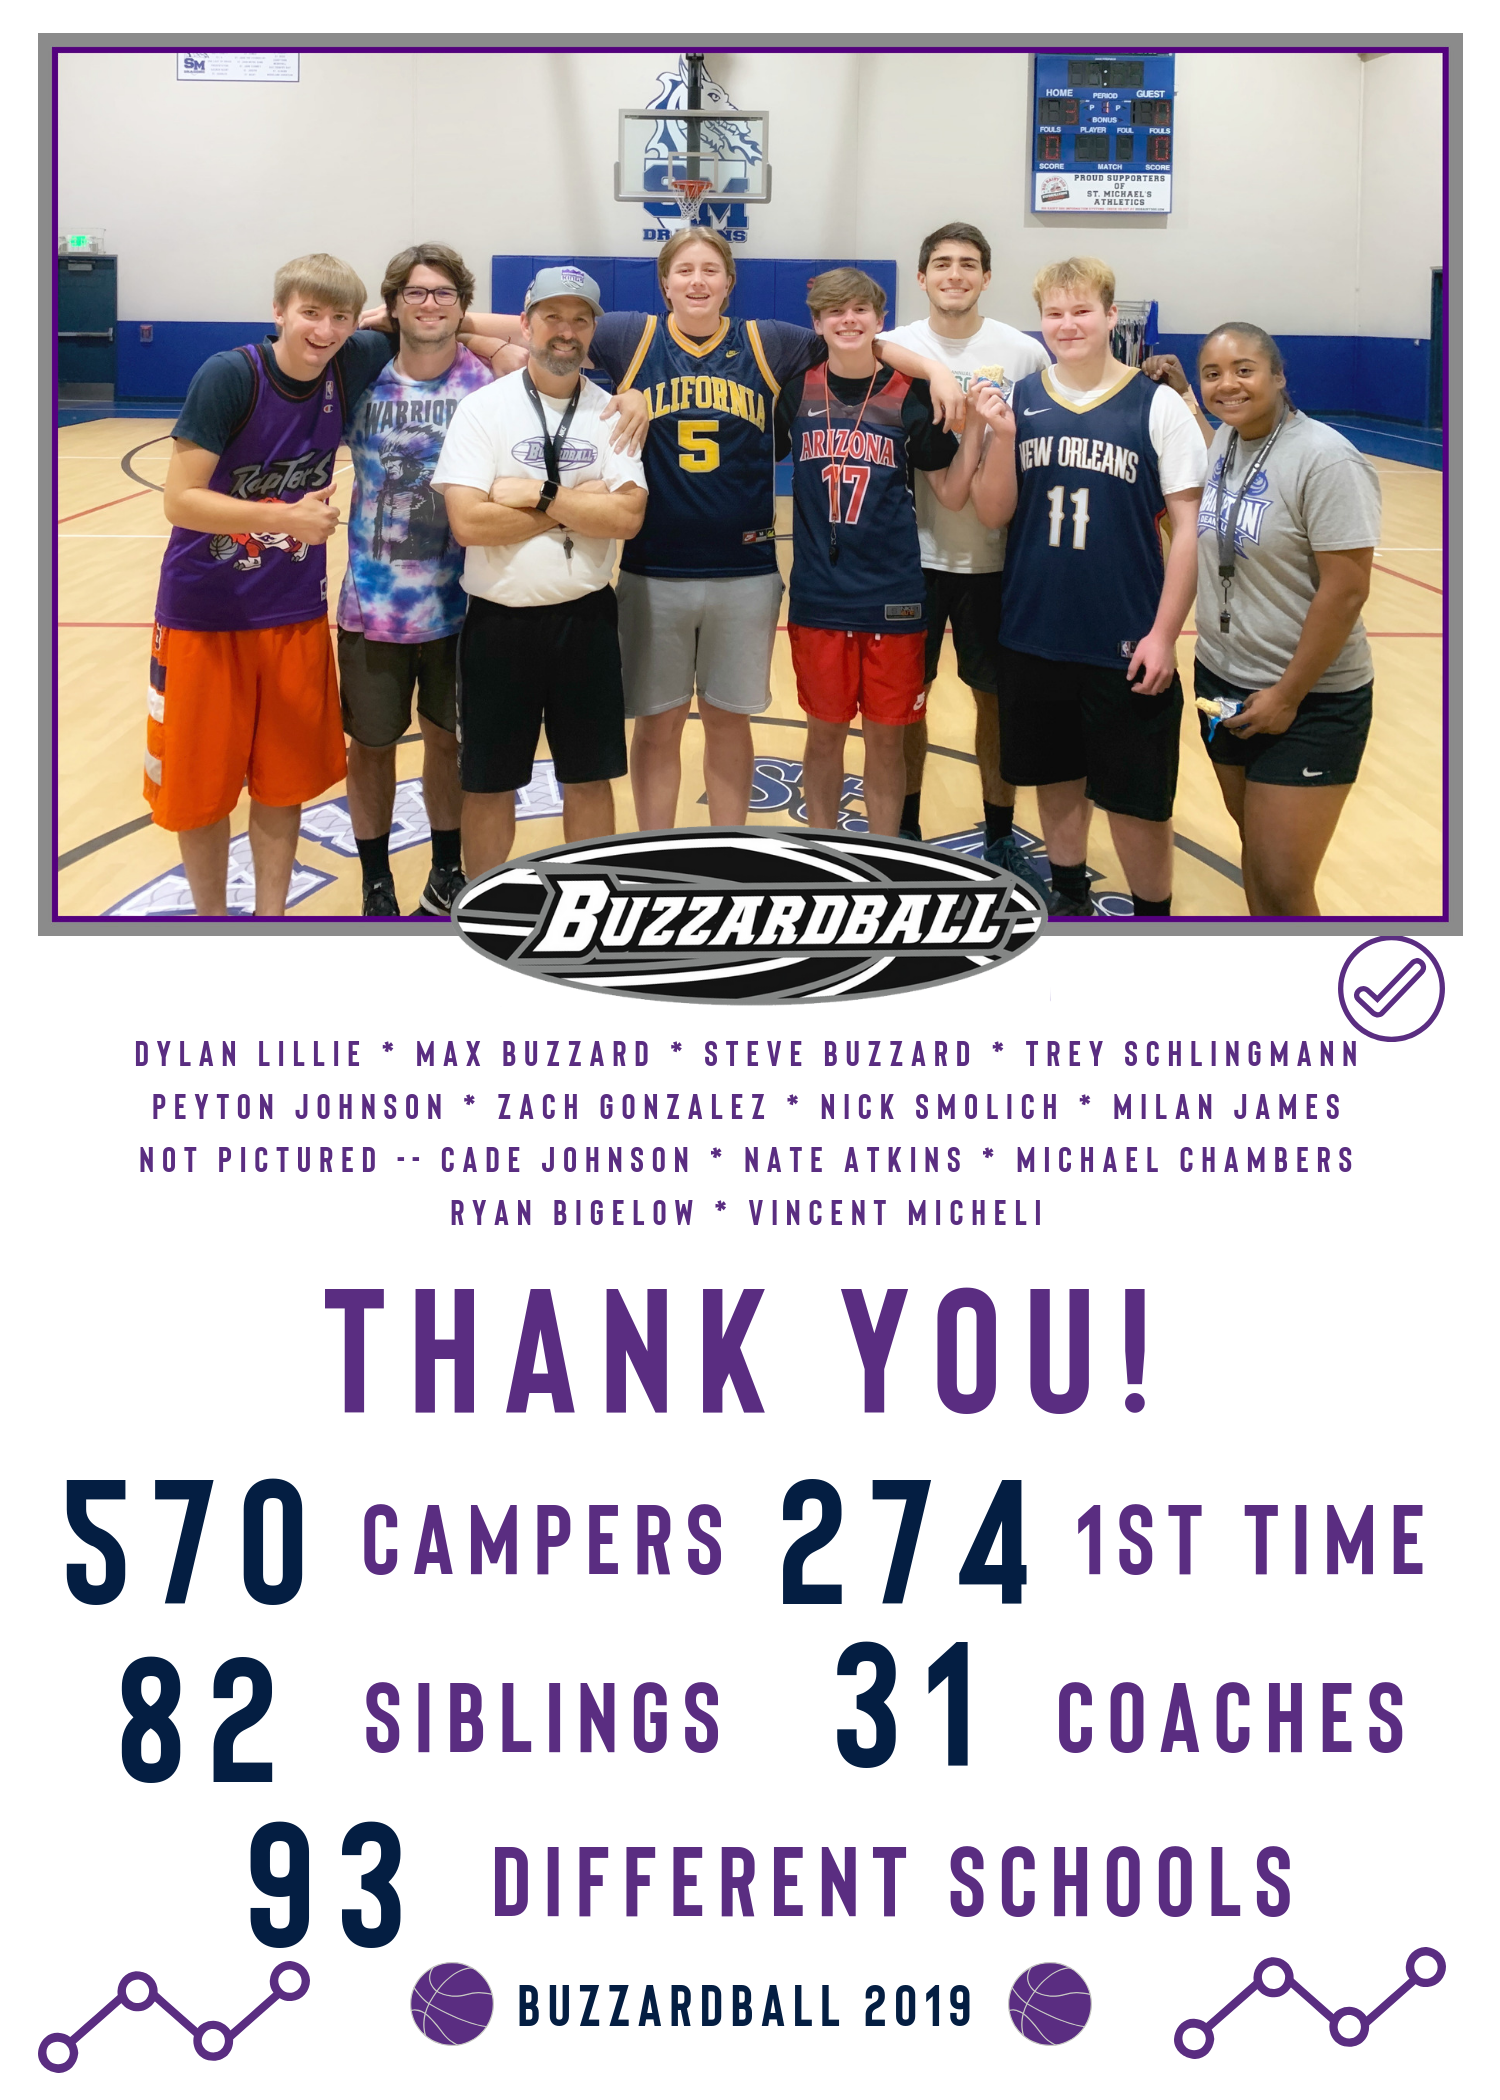 8 Weeks   40 Days   a Buzzardball Record 570 Campers      On behalf of myself and my amazing coaching staff, THANK YOU for allowing your child to be a part of the Buzzardball Experience. We had an absolute BLAST this summer!